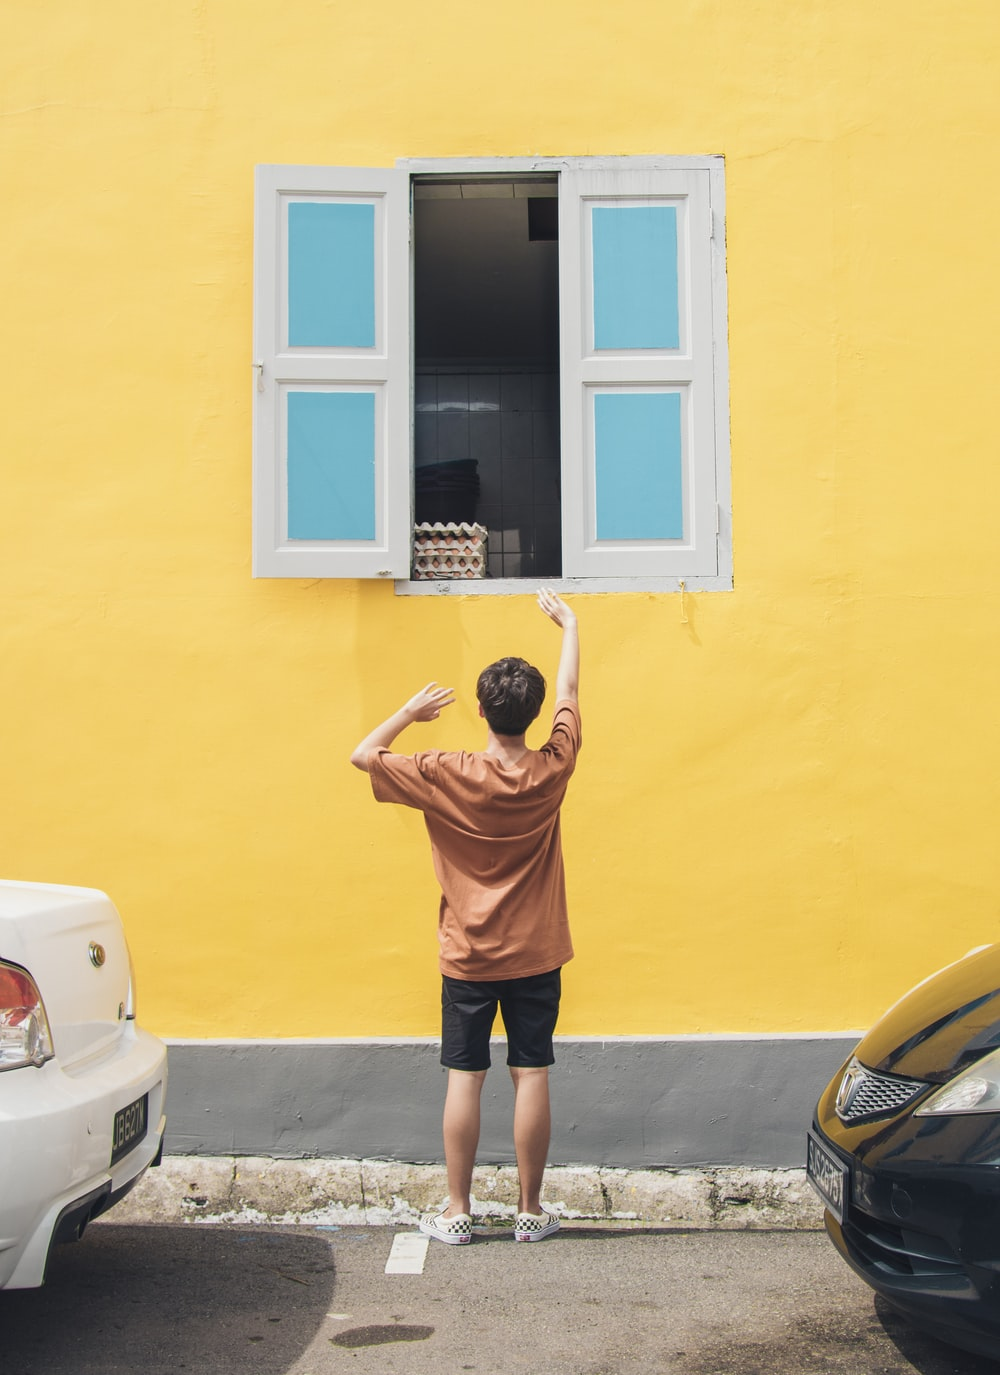 boy in front of window raising hand during daytime